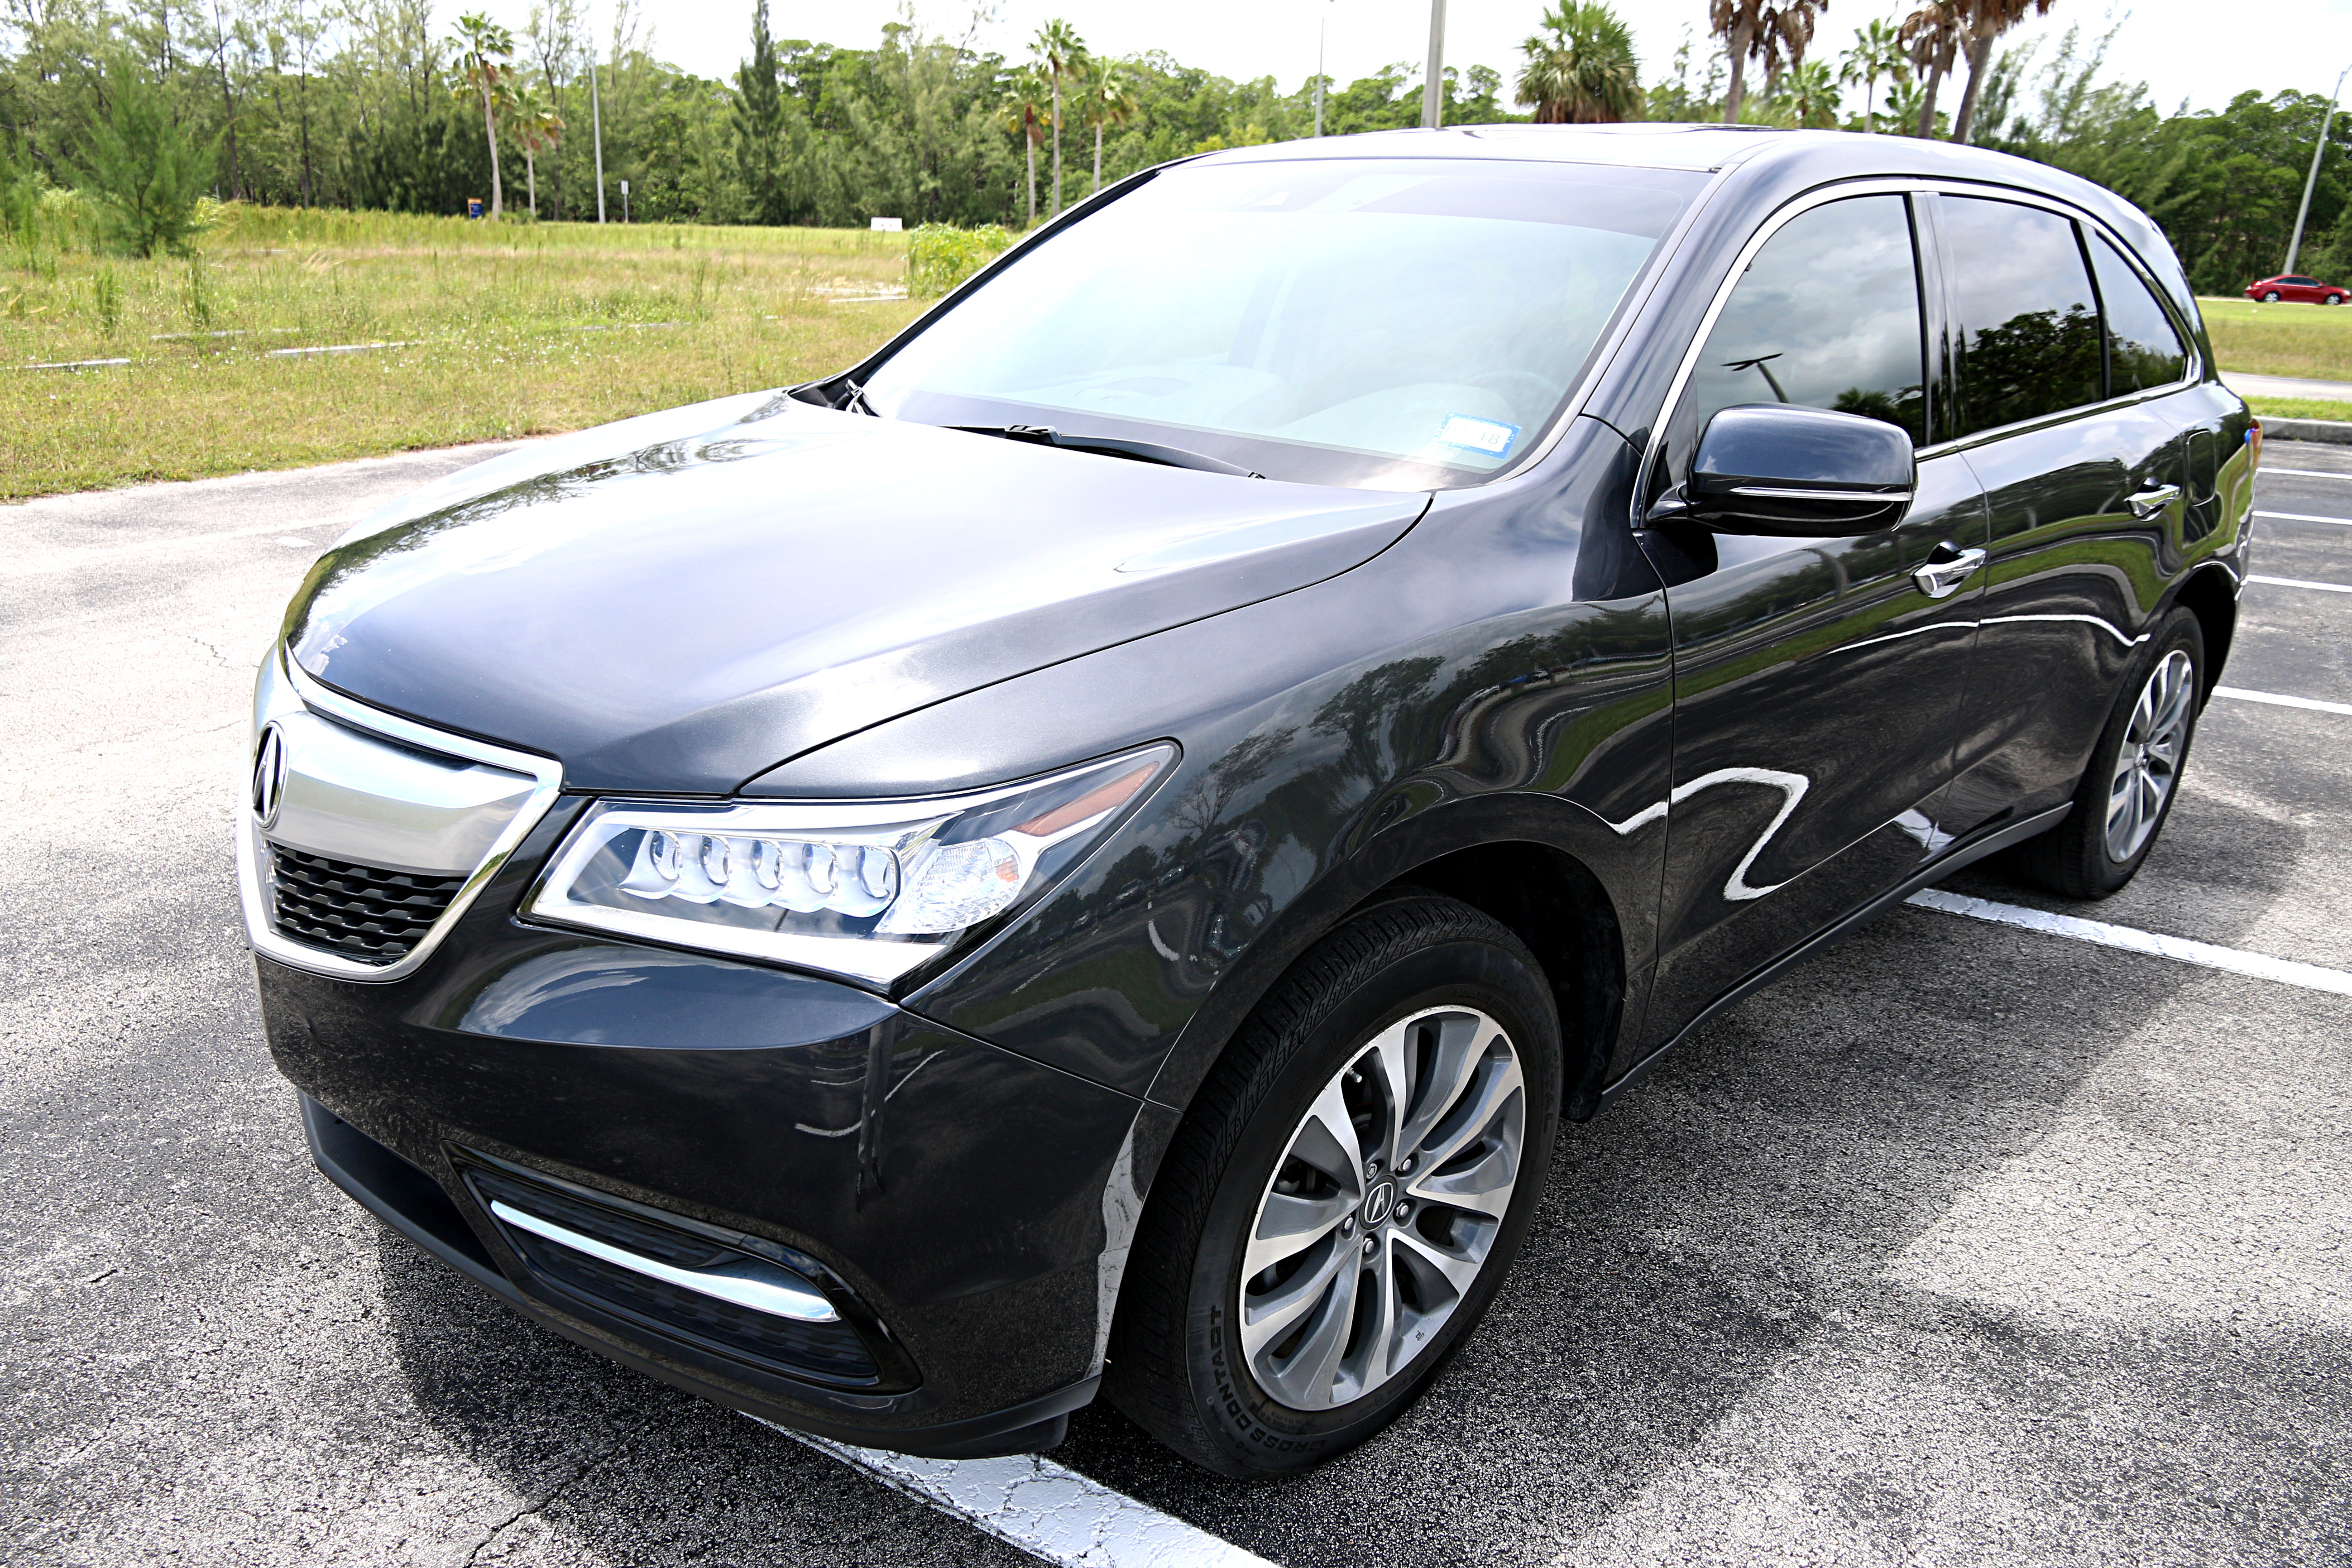 2016 Acura MDX MINT COND & FULLY LOADED MDX WOW